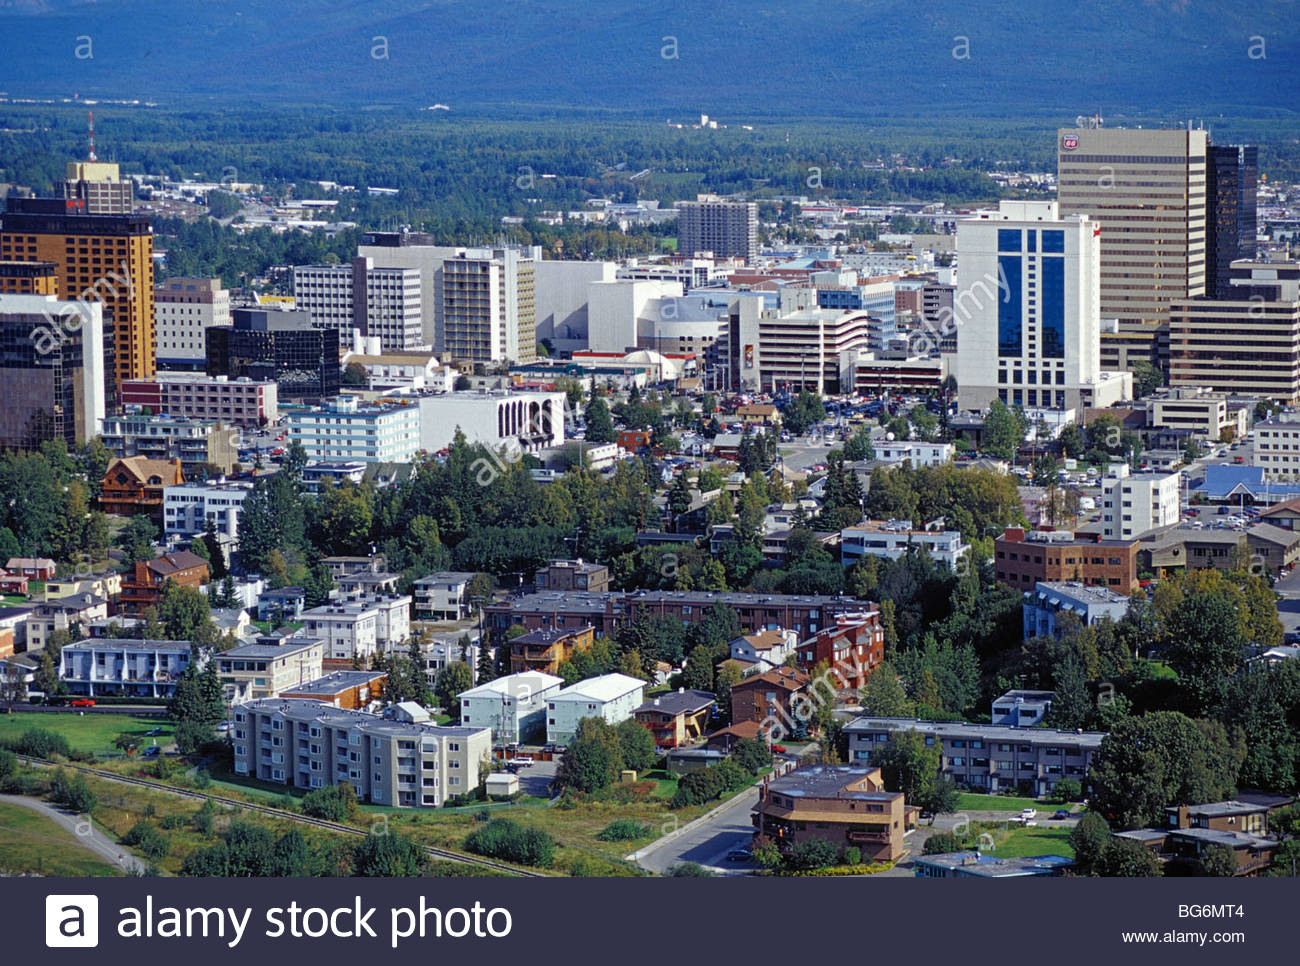 Alaska. Anchorage. Residential areas hug closely to the city's business district. Aerial. - Stock Image